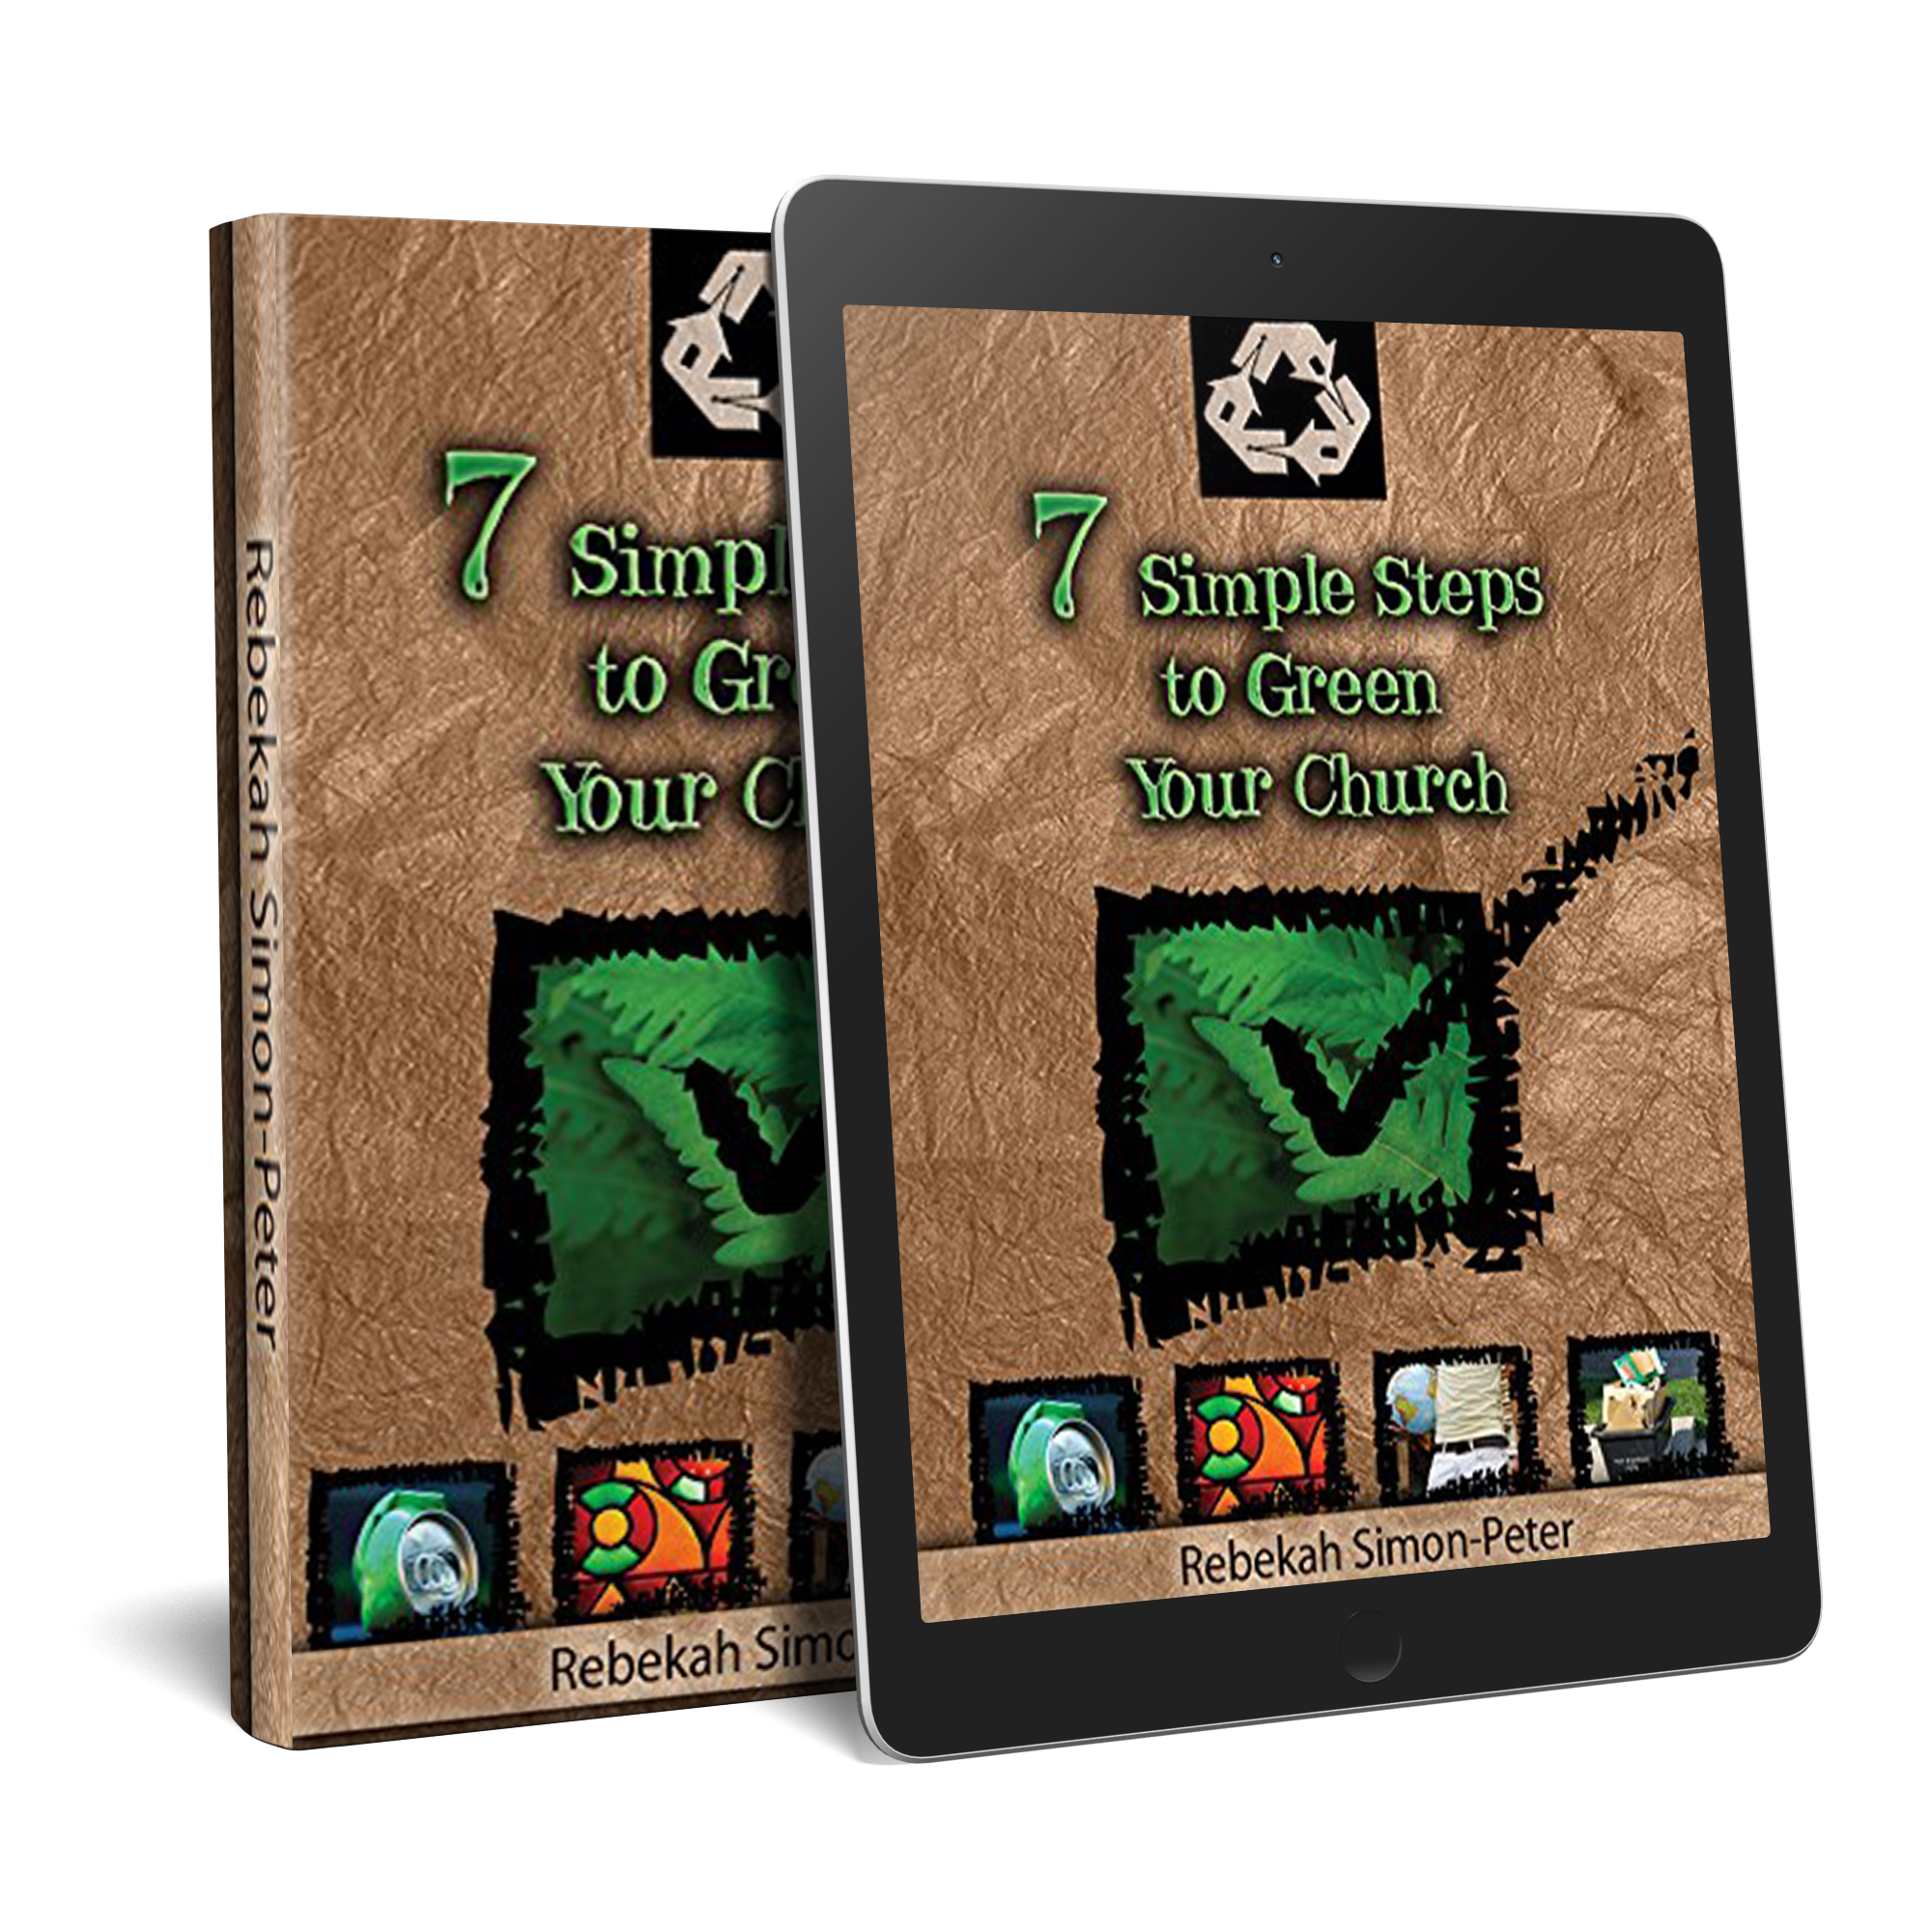 7 simple steps to Green your church cover